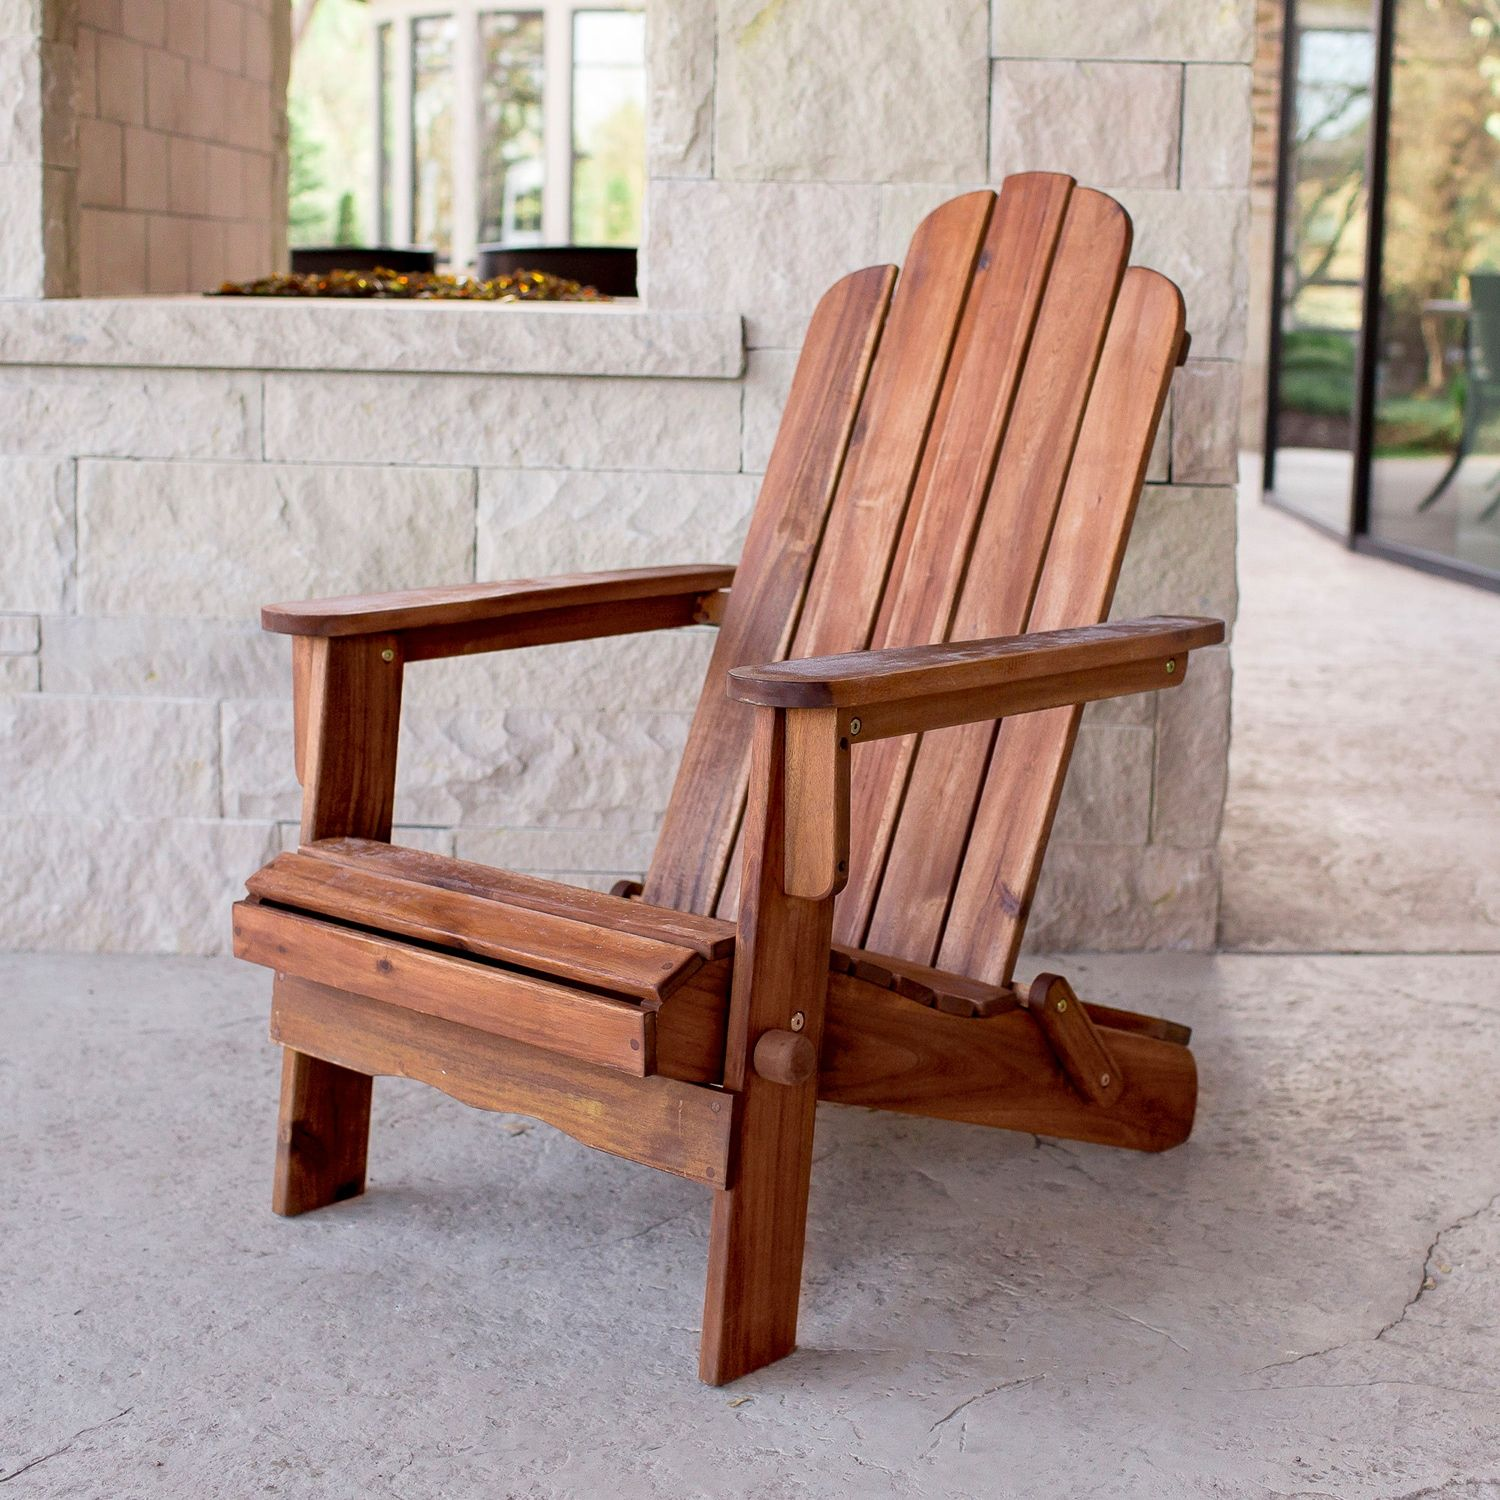 Acacia Brown Adirondack Chair Outdoor Chairs Wood Adirondack